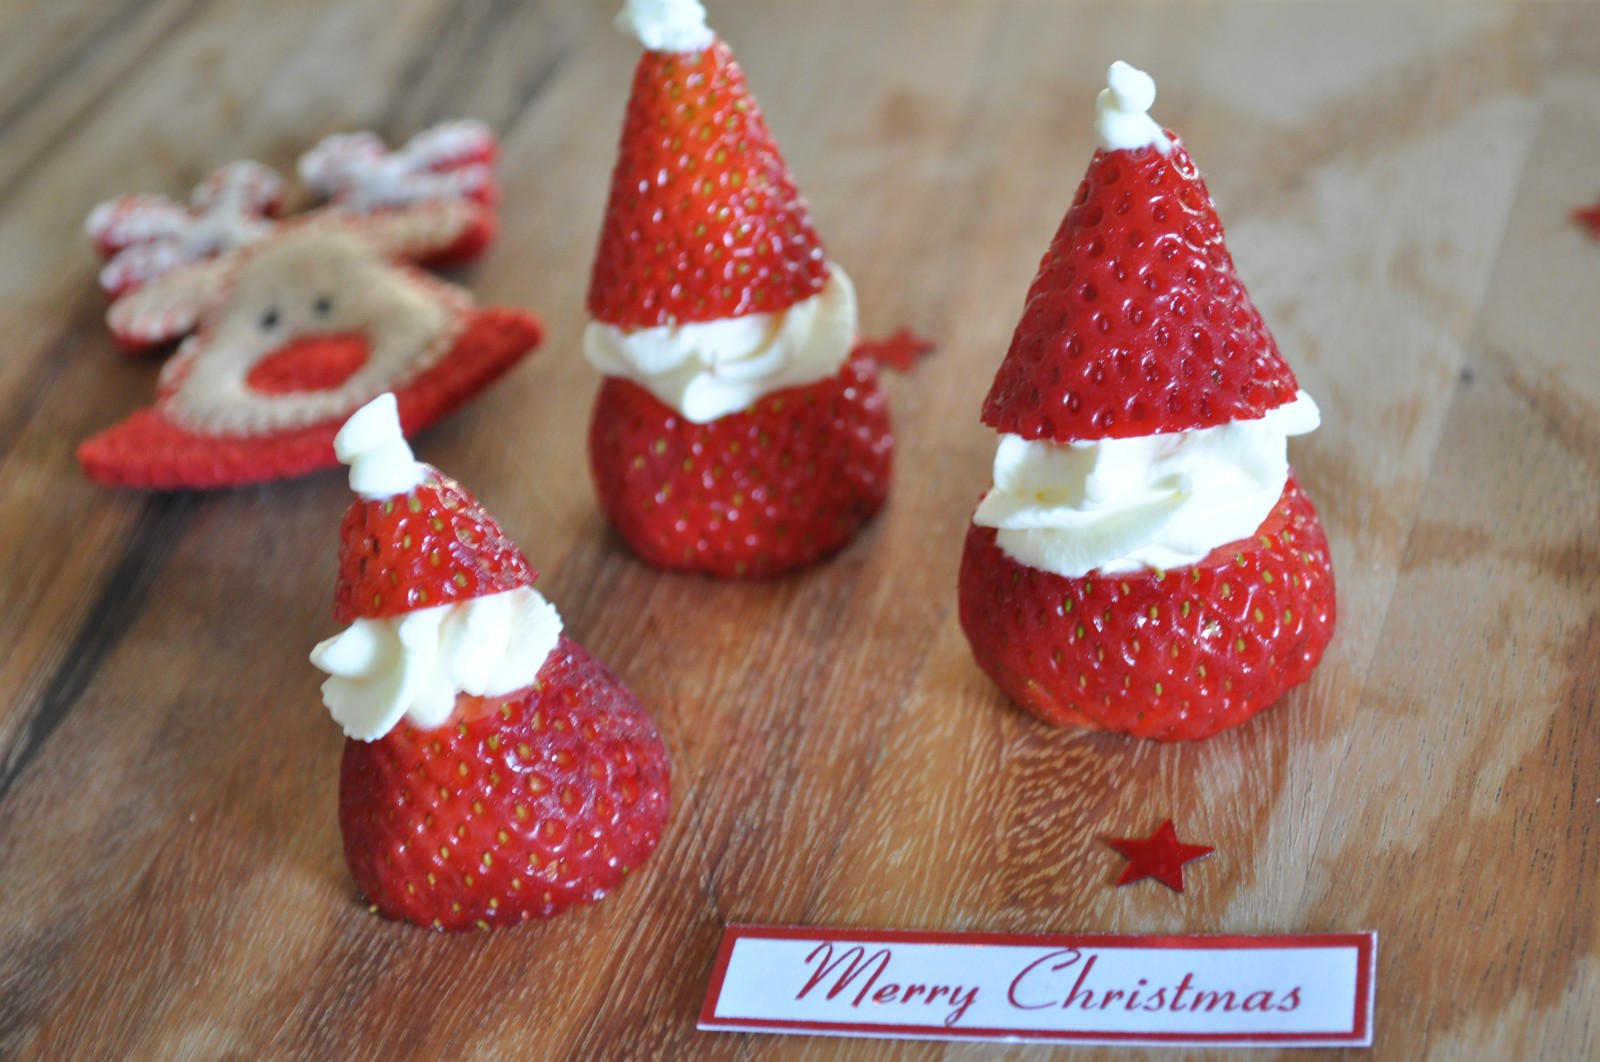 Santa strawberries – it's begining to look a lot like Christmas!